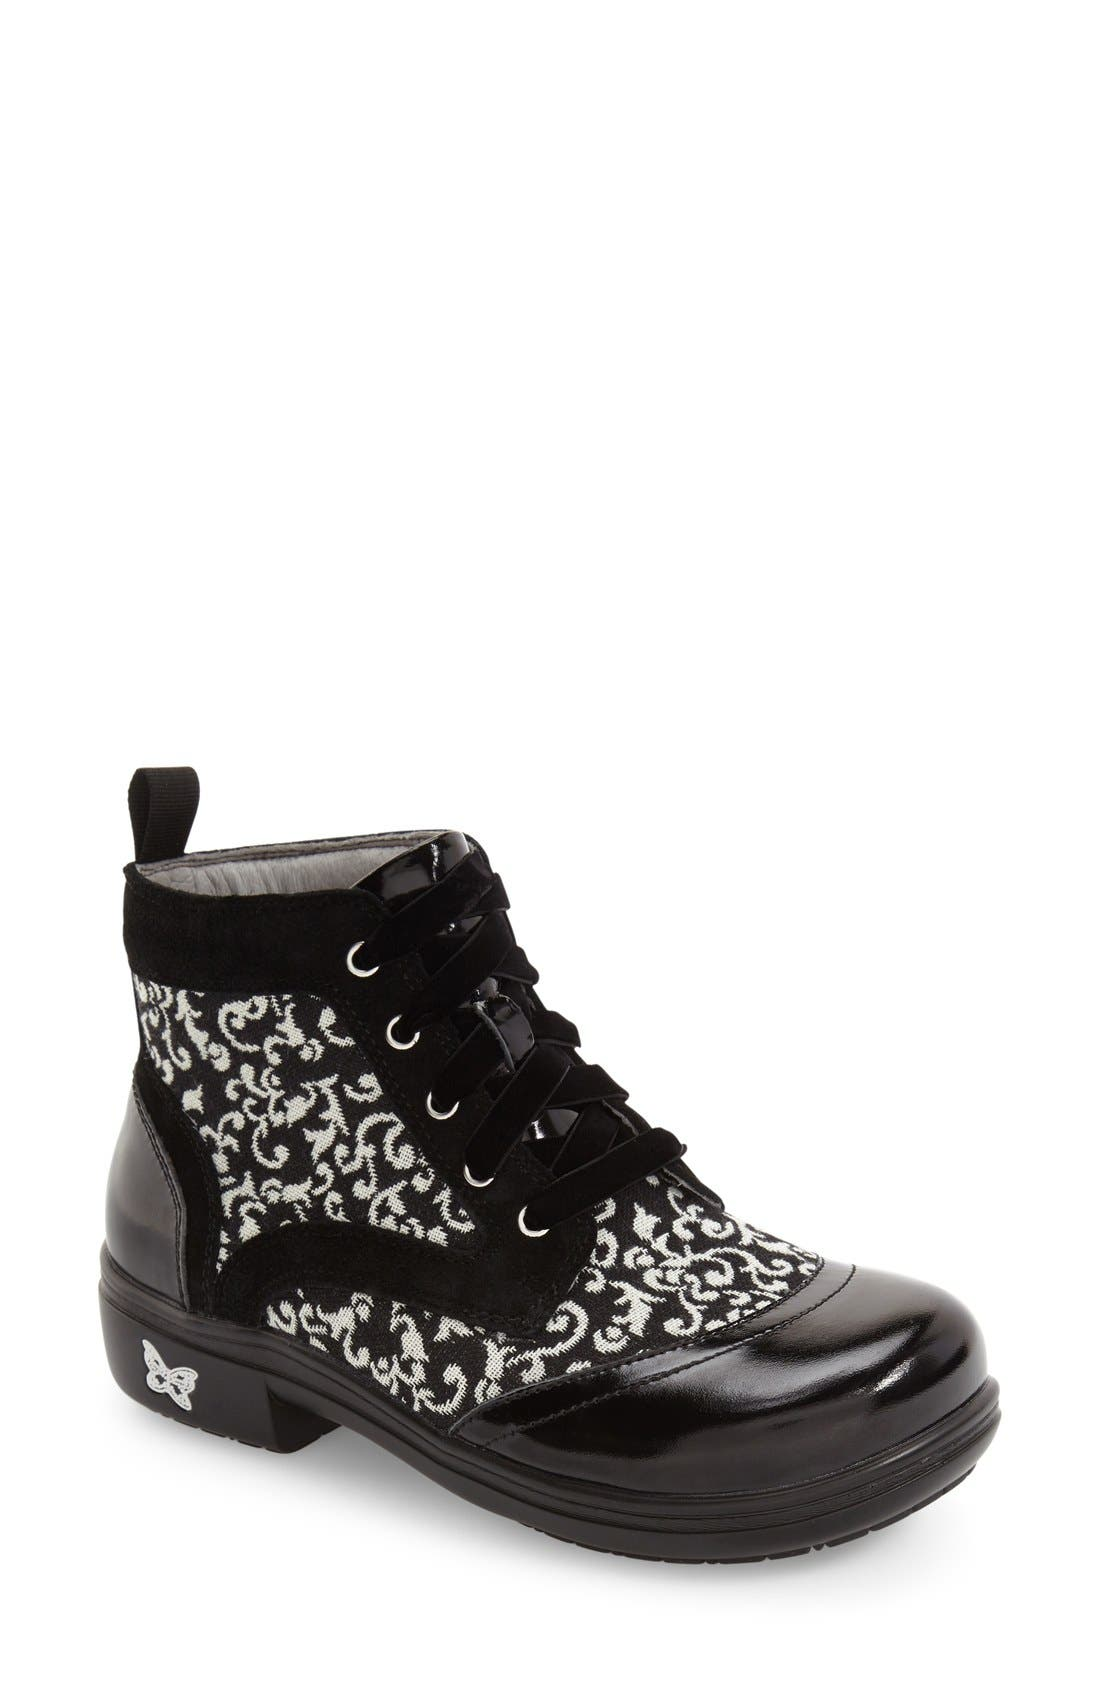 Main Image - Alegria 'Kylie' Leather Boot (Women)